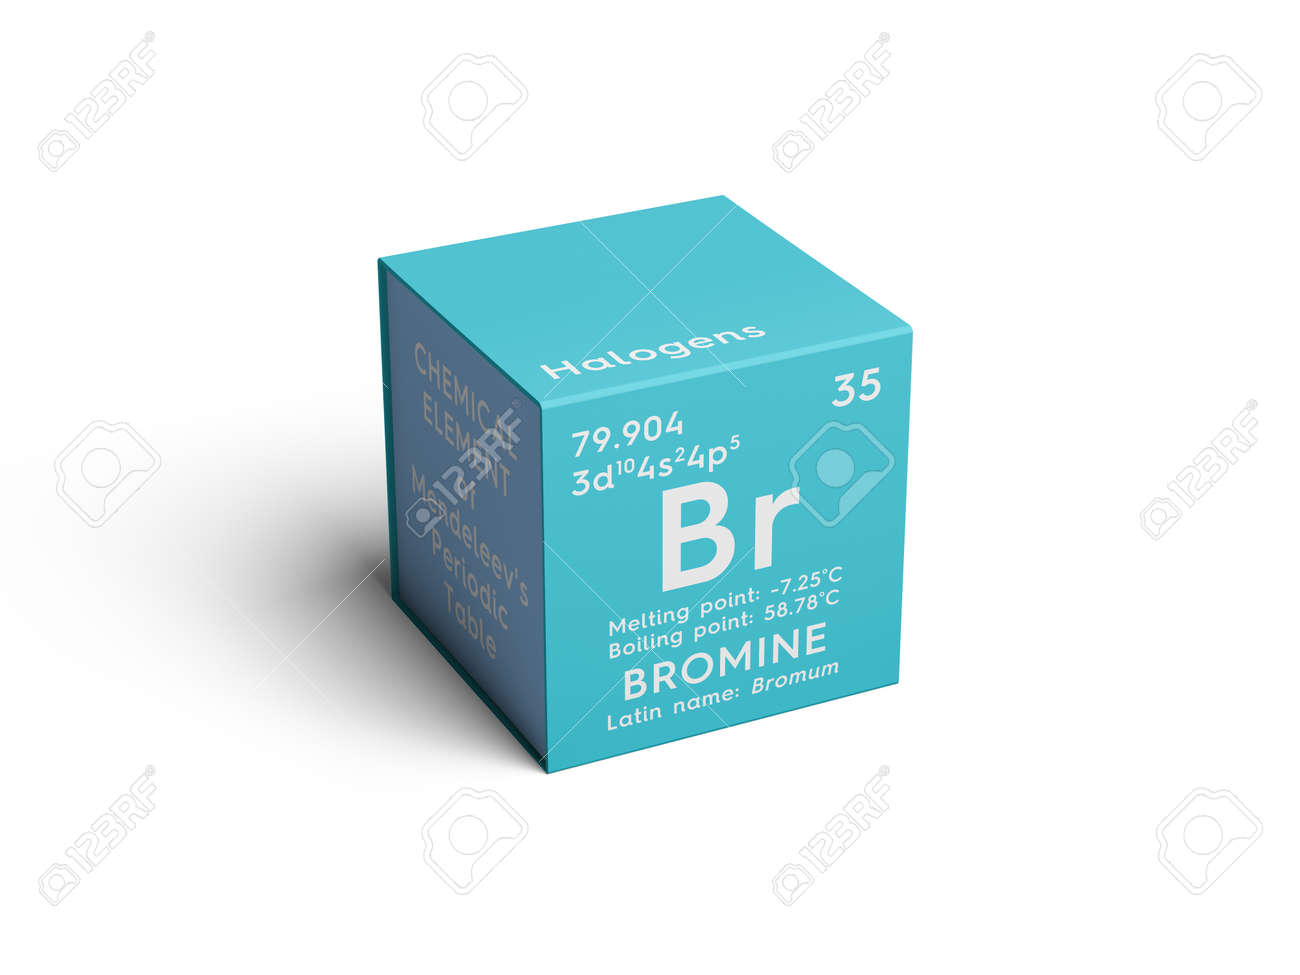 Bromine periodic table gallery periodic table images periodic table bromine choice image periodic table images bromine bromum halogens chemical element of mendeleevs bromine gamestrikefo Gallery